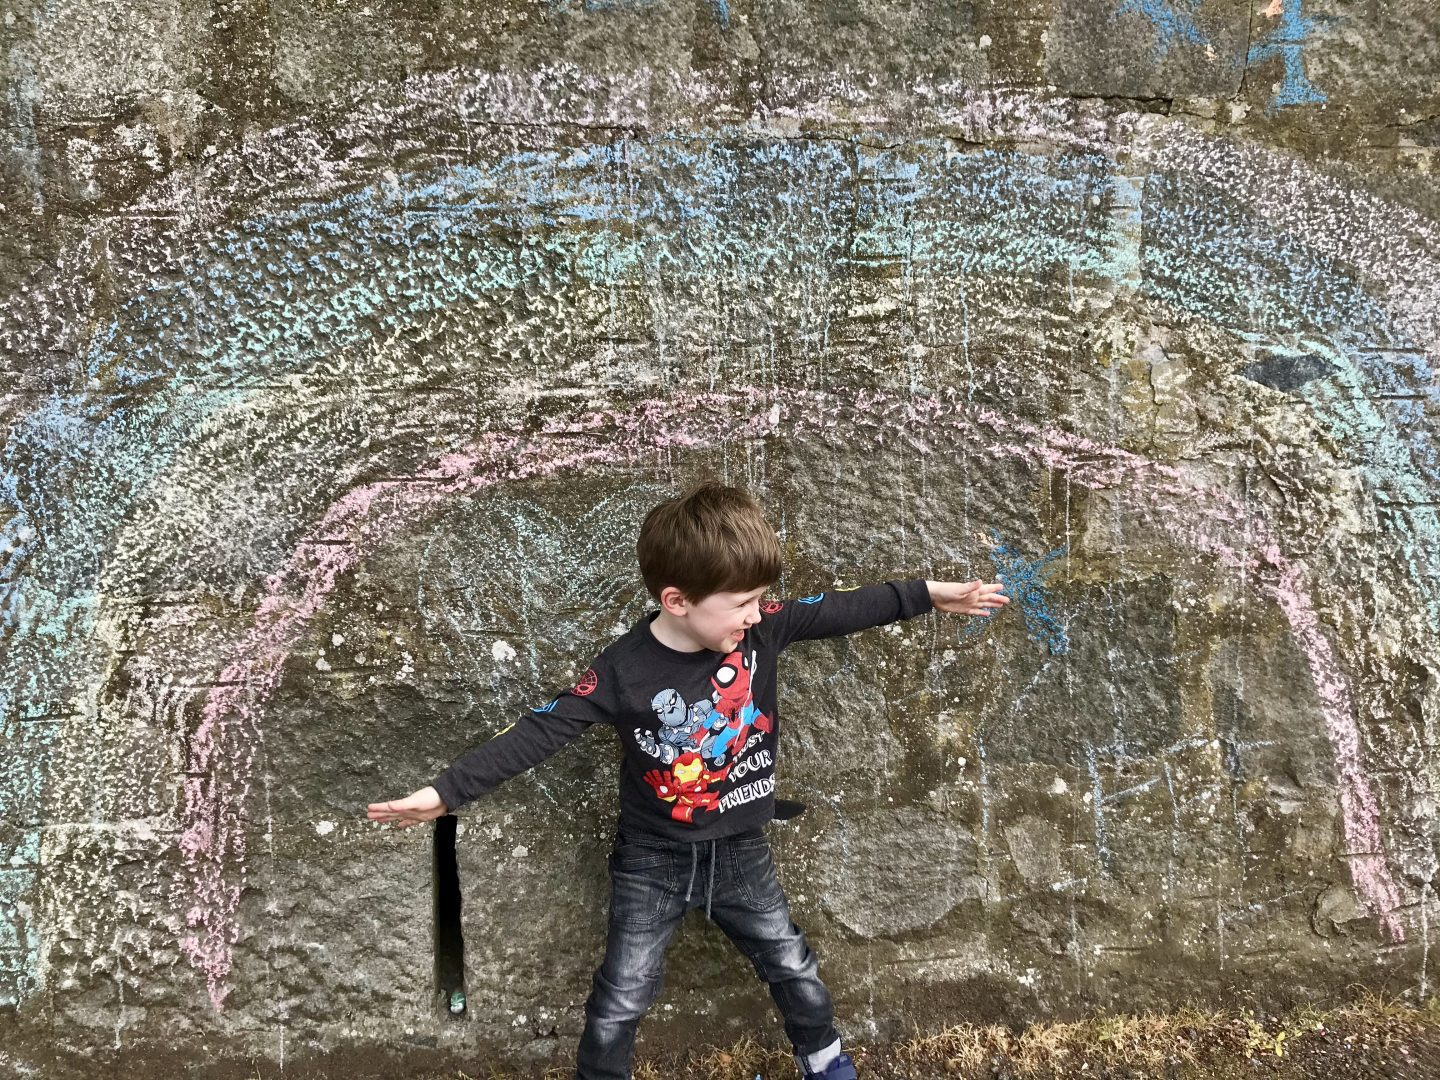 A boy standing in the middle of a giant rainbow drawn on a brick wall in chalk, with his arms spread open